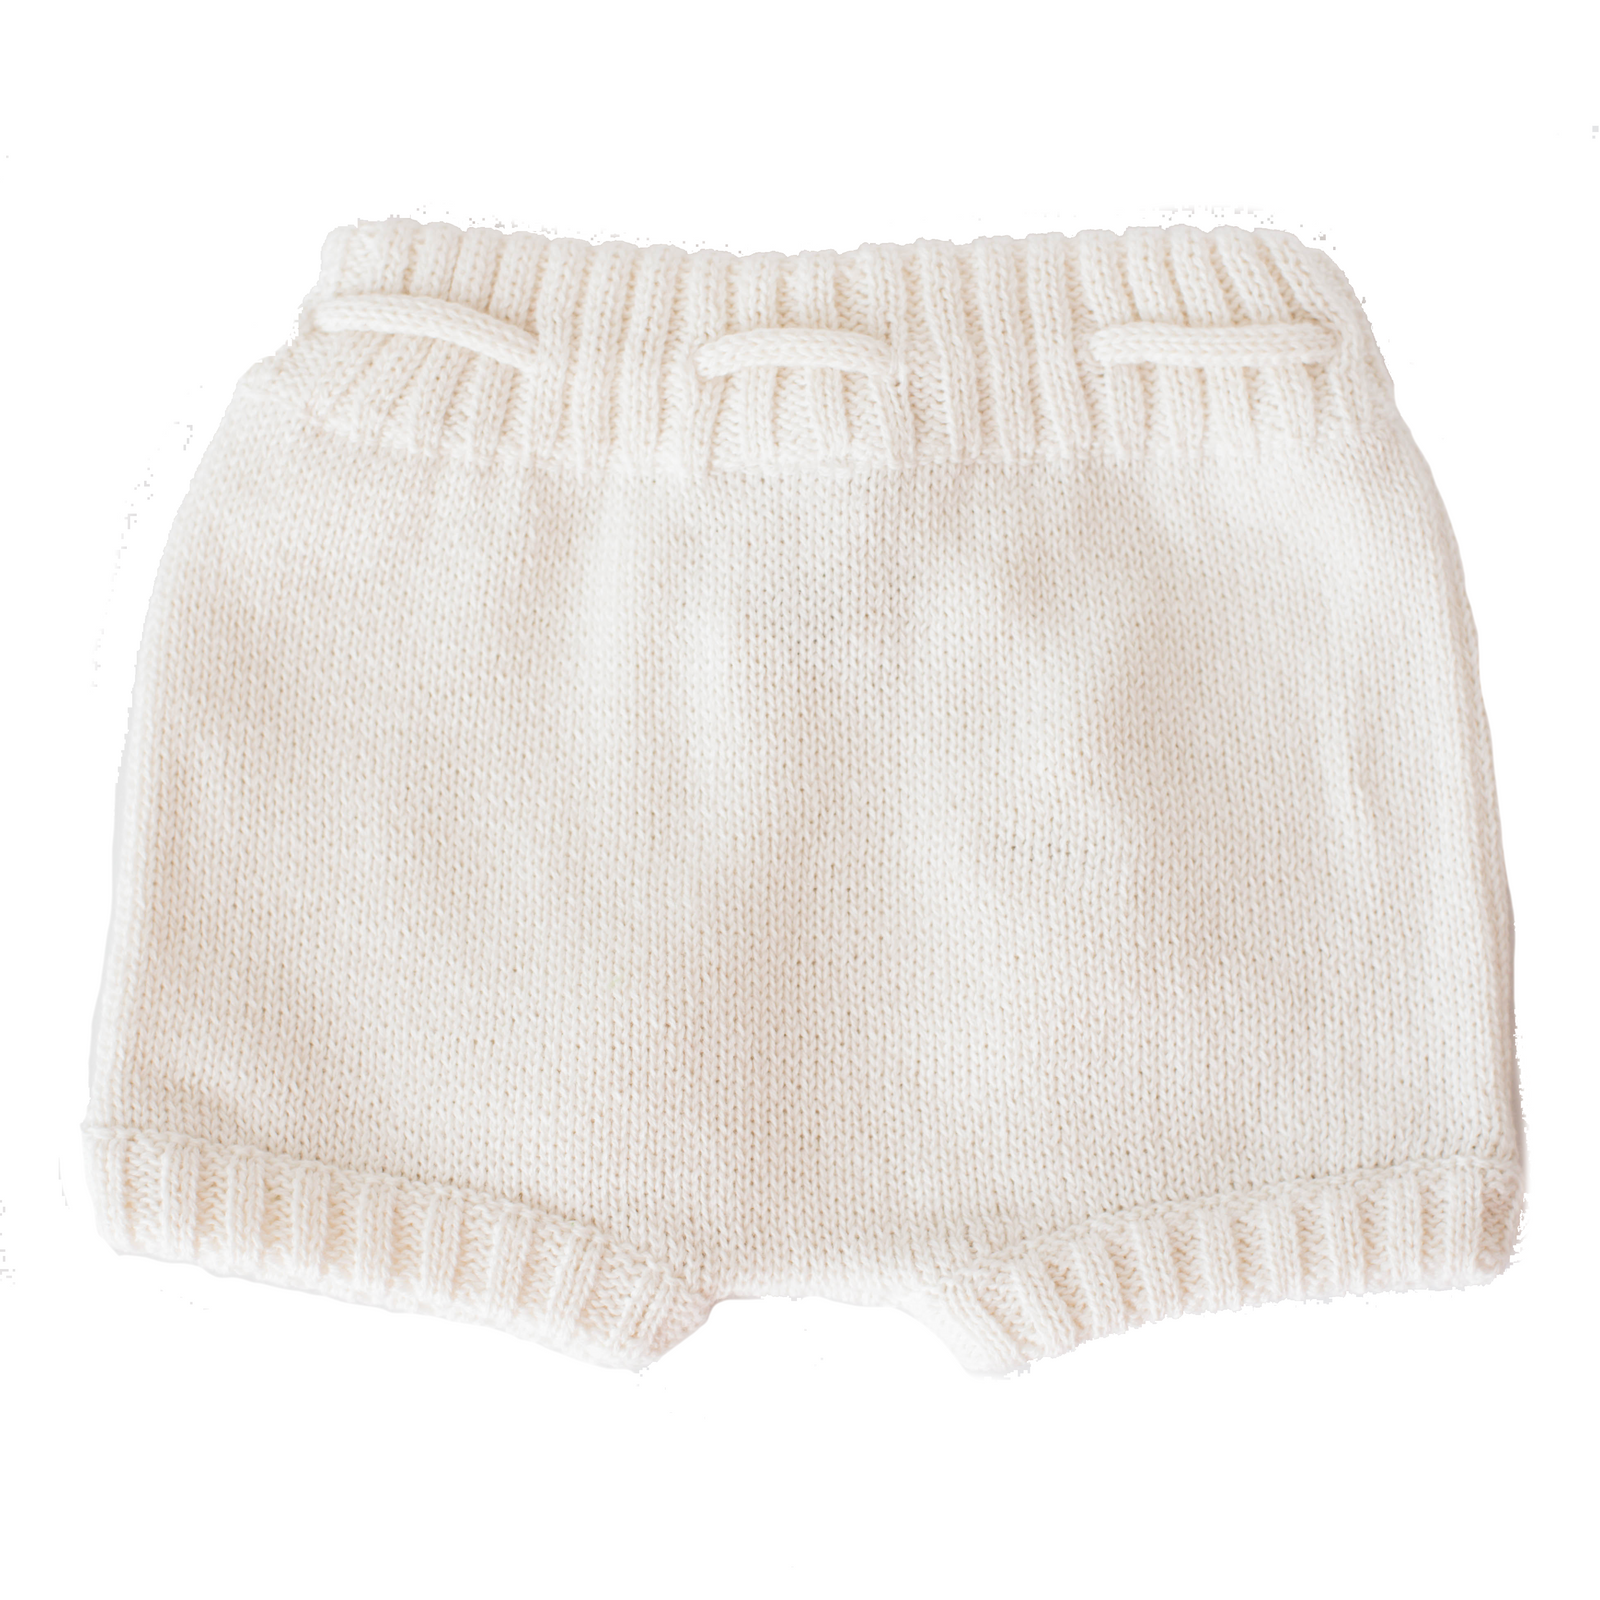 ivory knitted shorties back